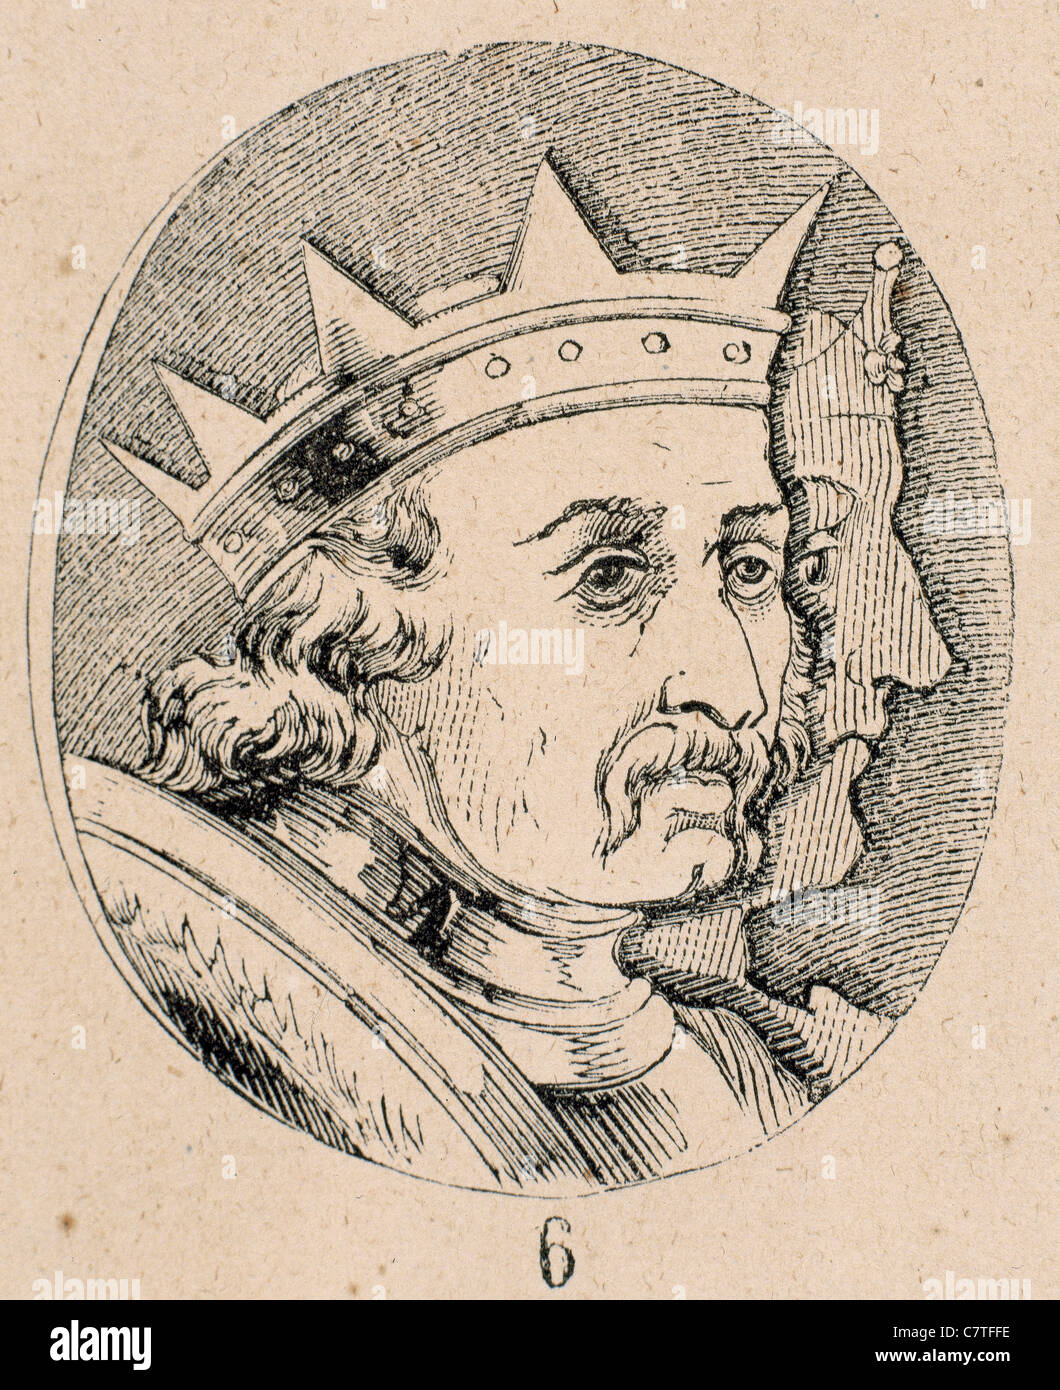 Alfonso I, the Battler (1073-1134). King of Aragon. Engraving. - Stock Image